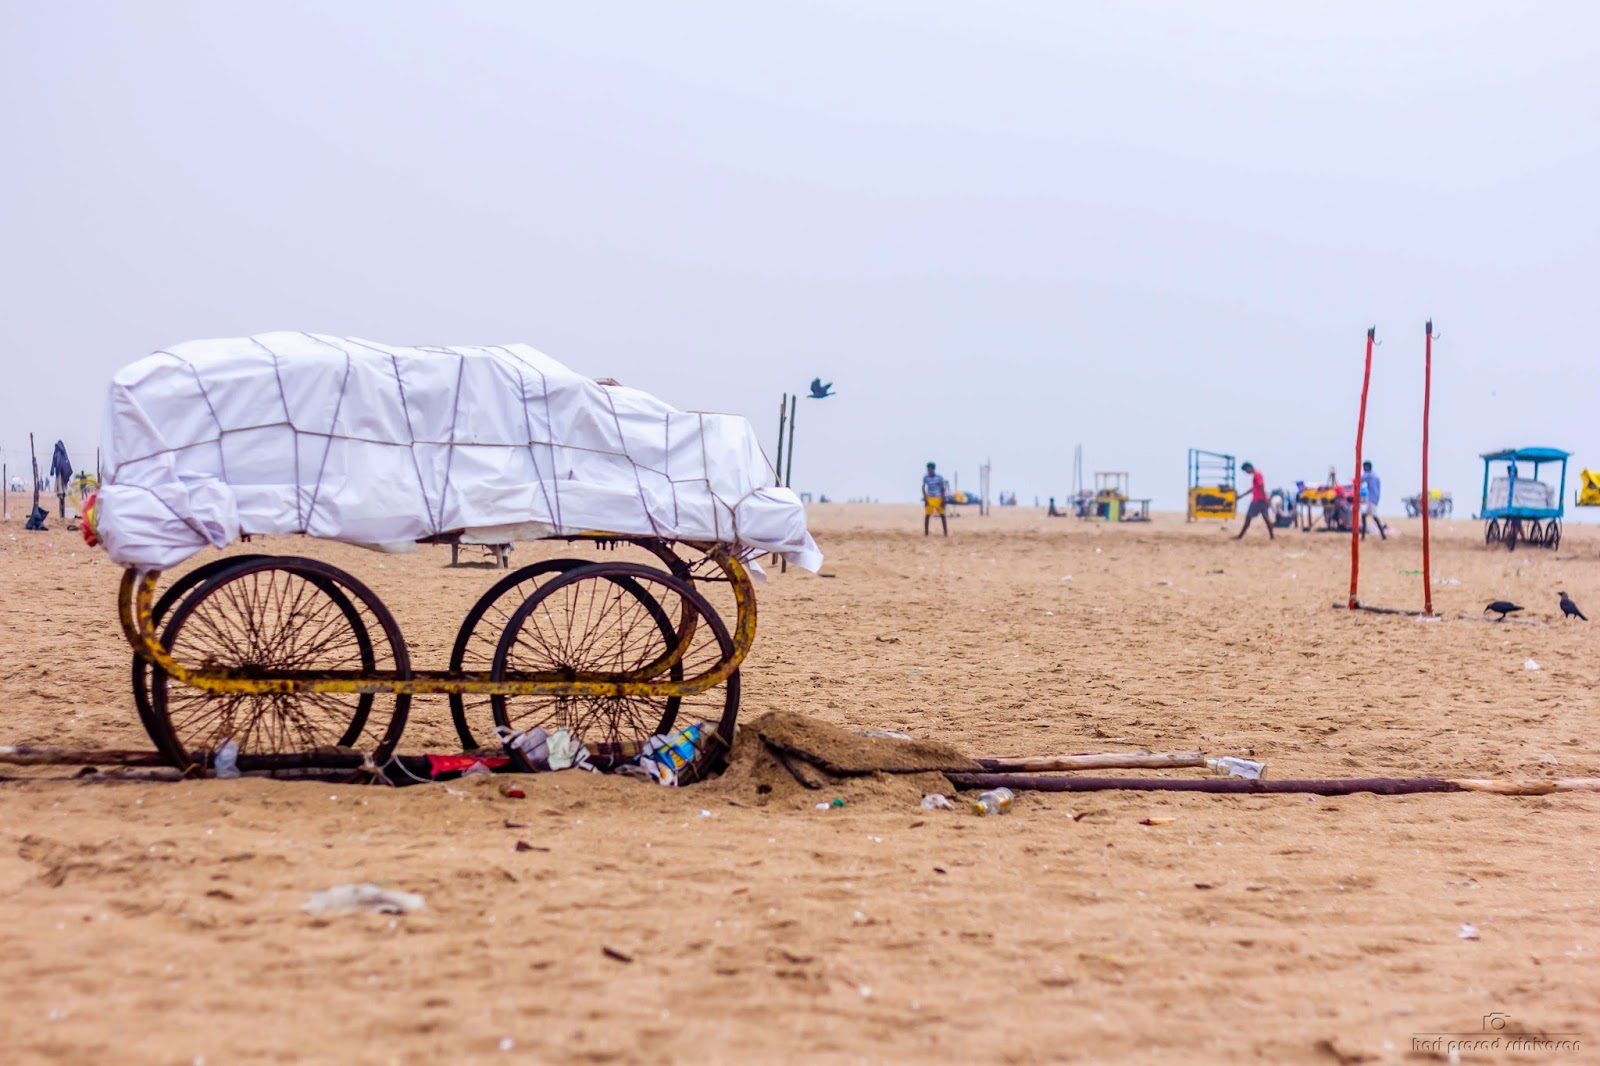 Photo of a cart used in Chennai beach to set-up shop. Photo taken on a cloudy day.